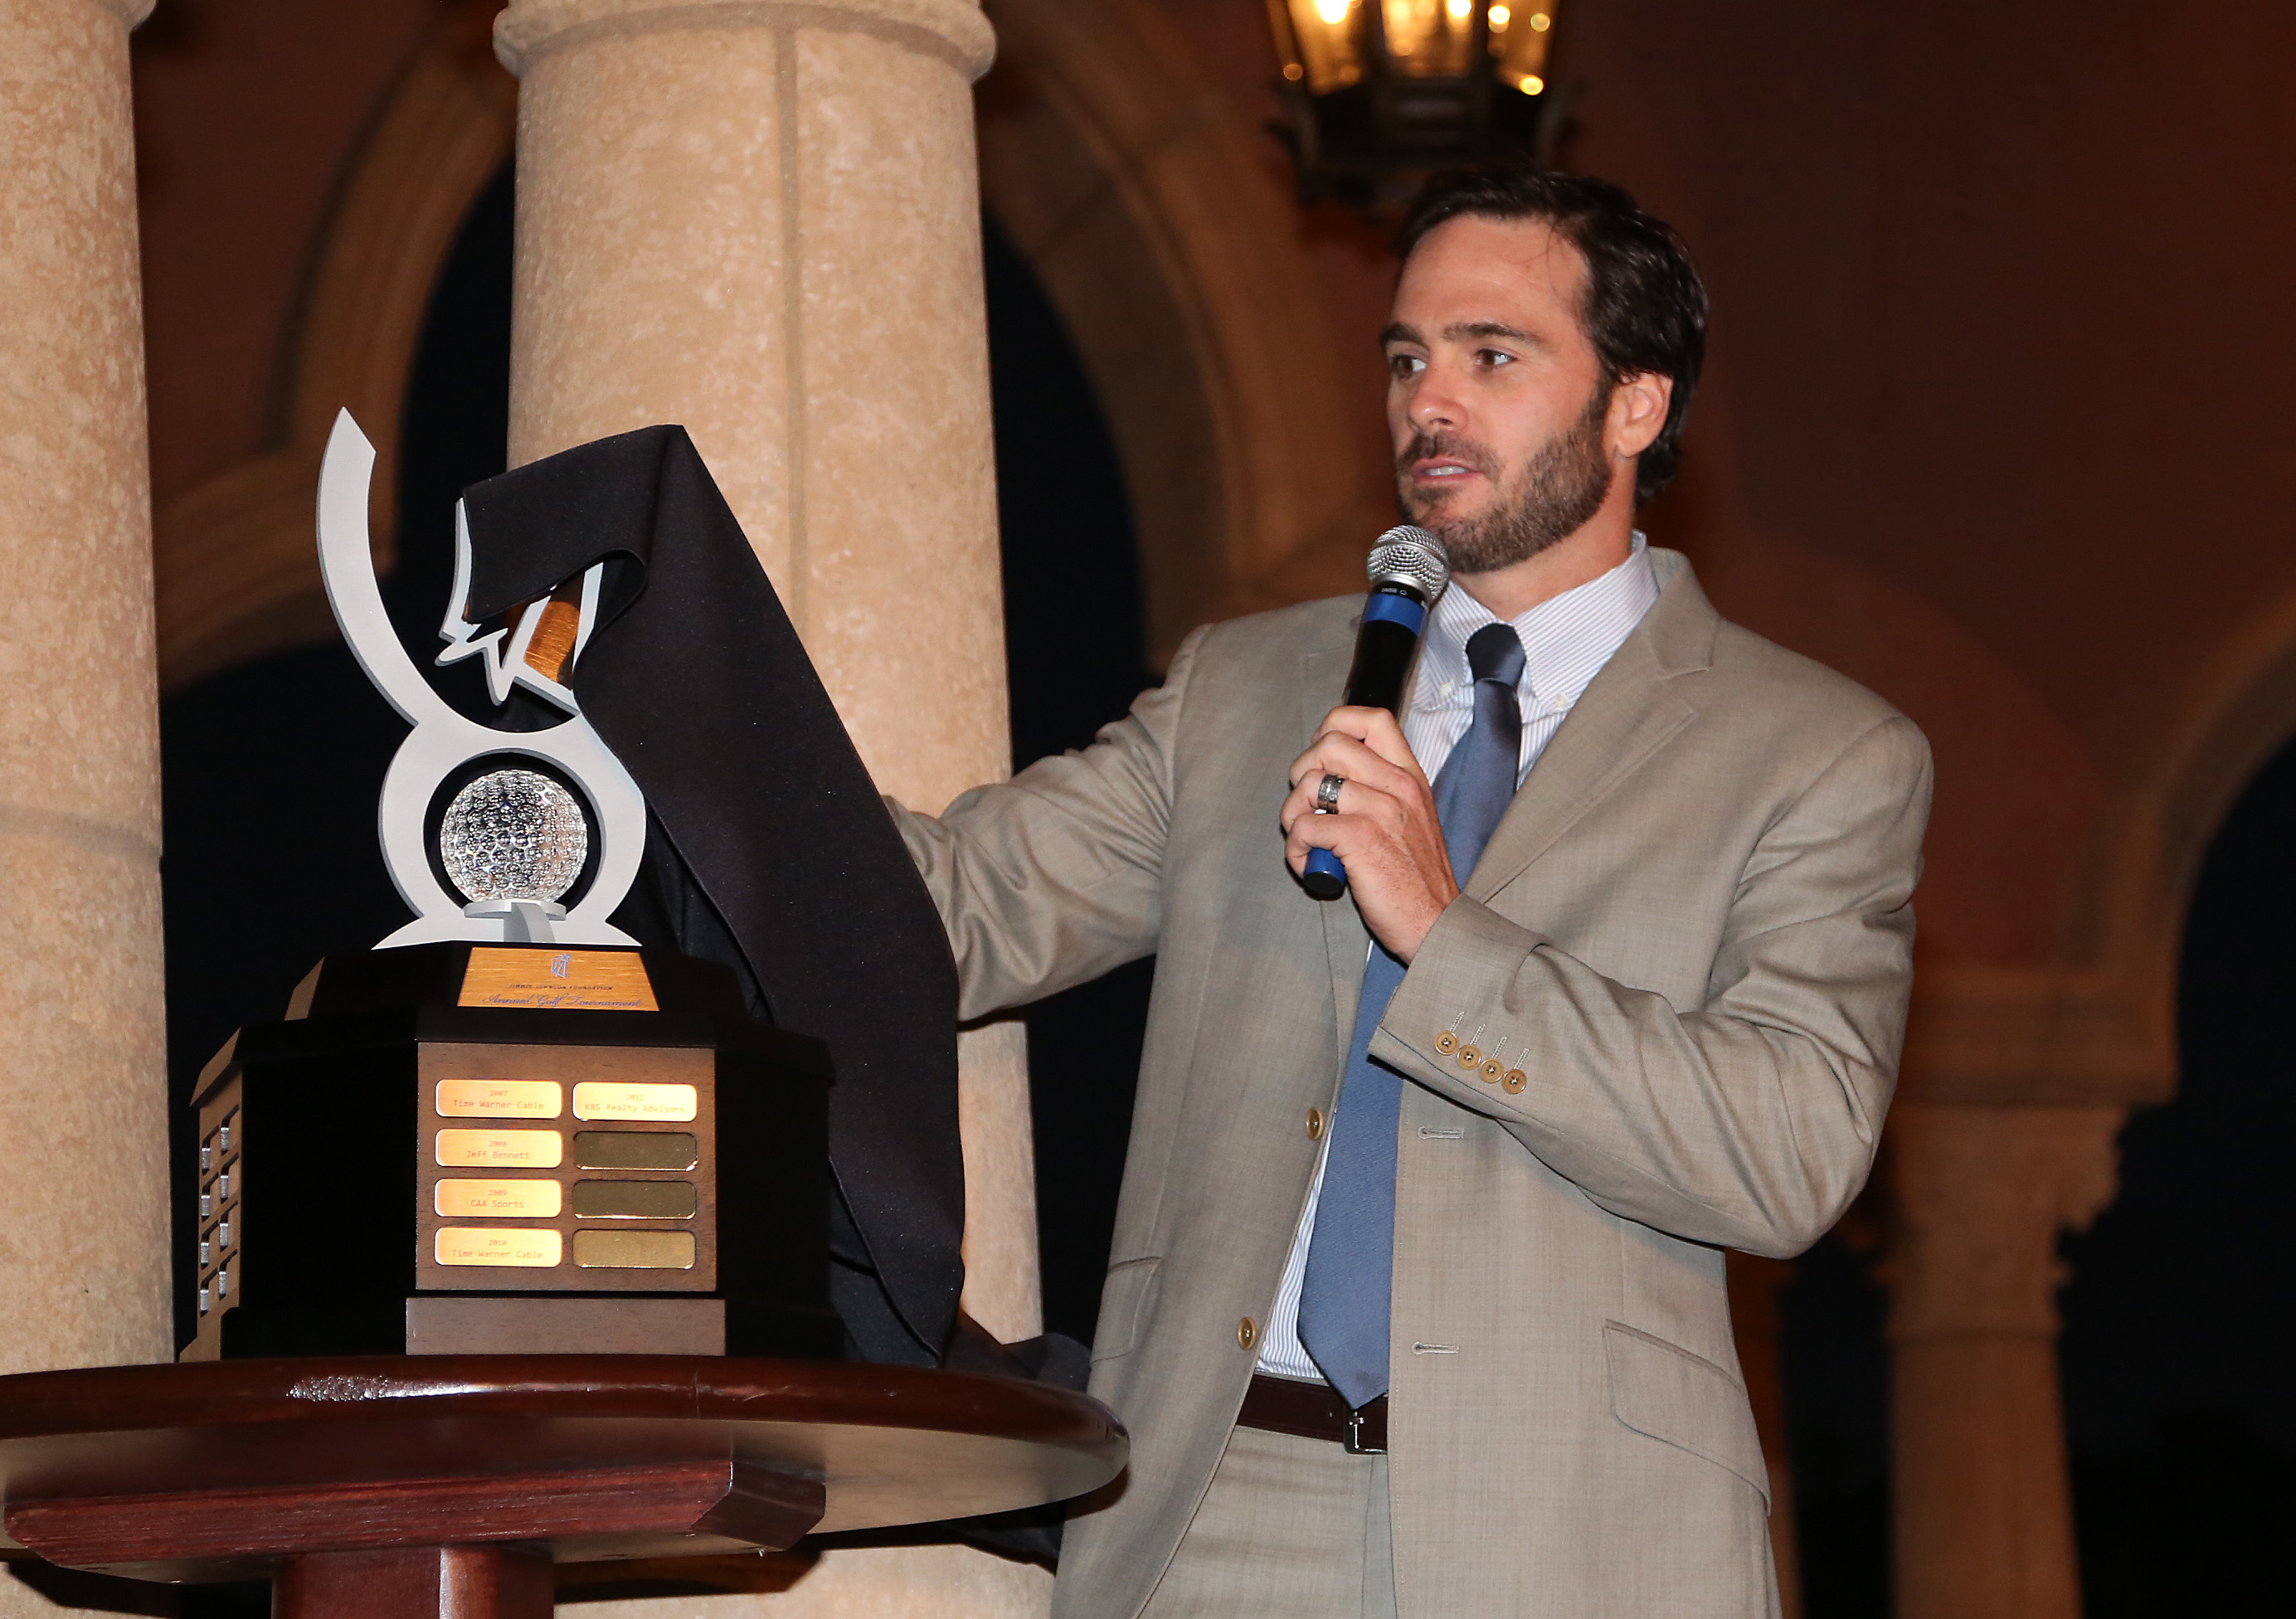 Jimmie unveiled the brand new JJF Golf Tournament Championship Trophy at the Annual Dinner and Auction (San Diego, 2012)